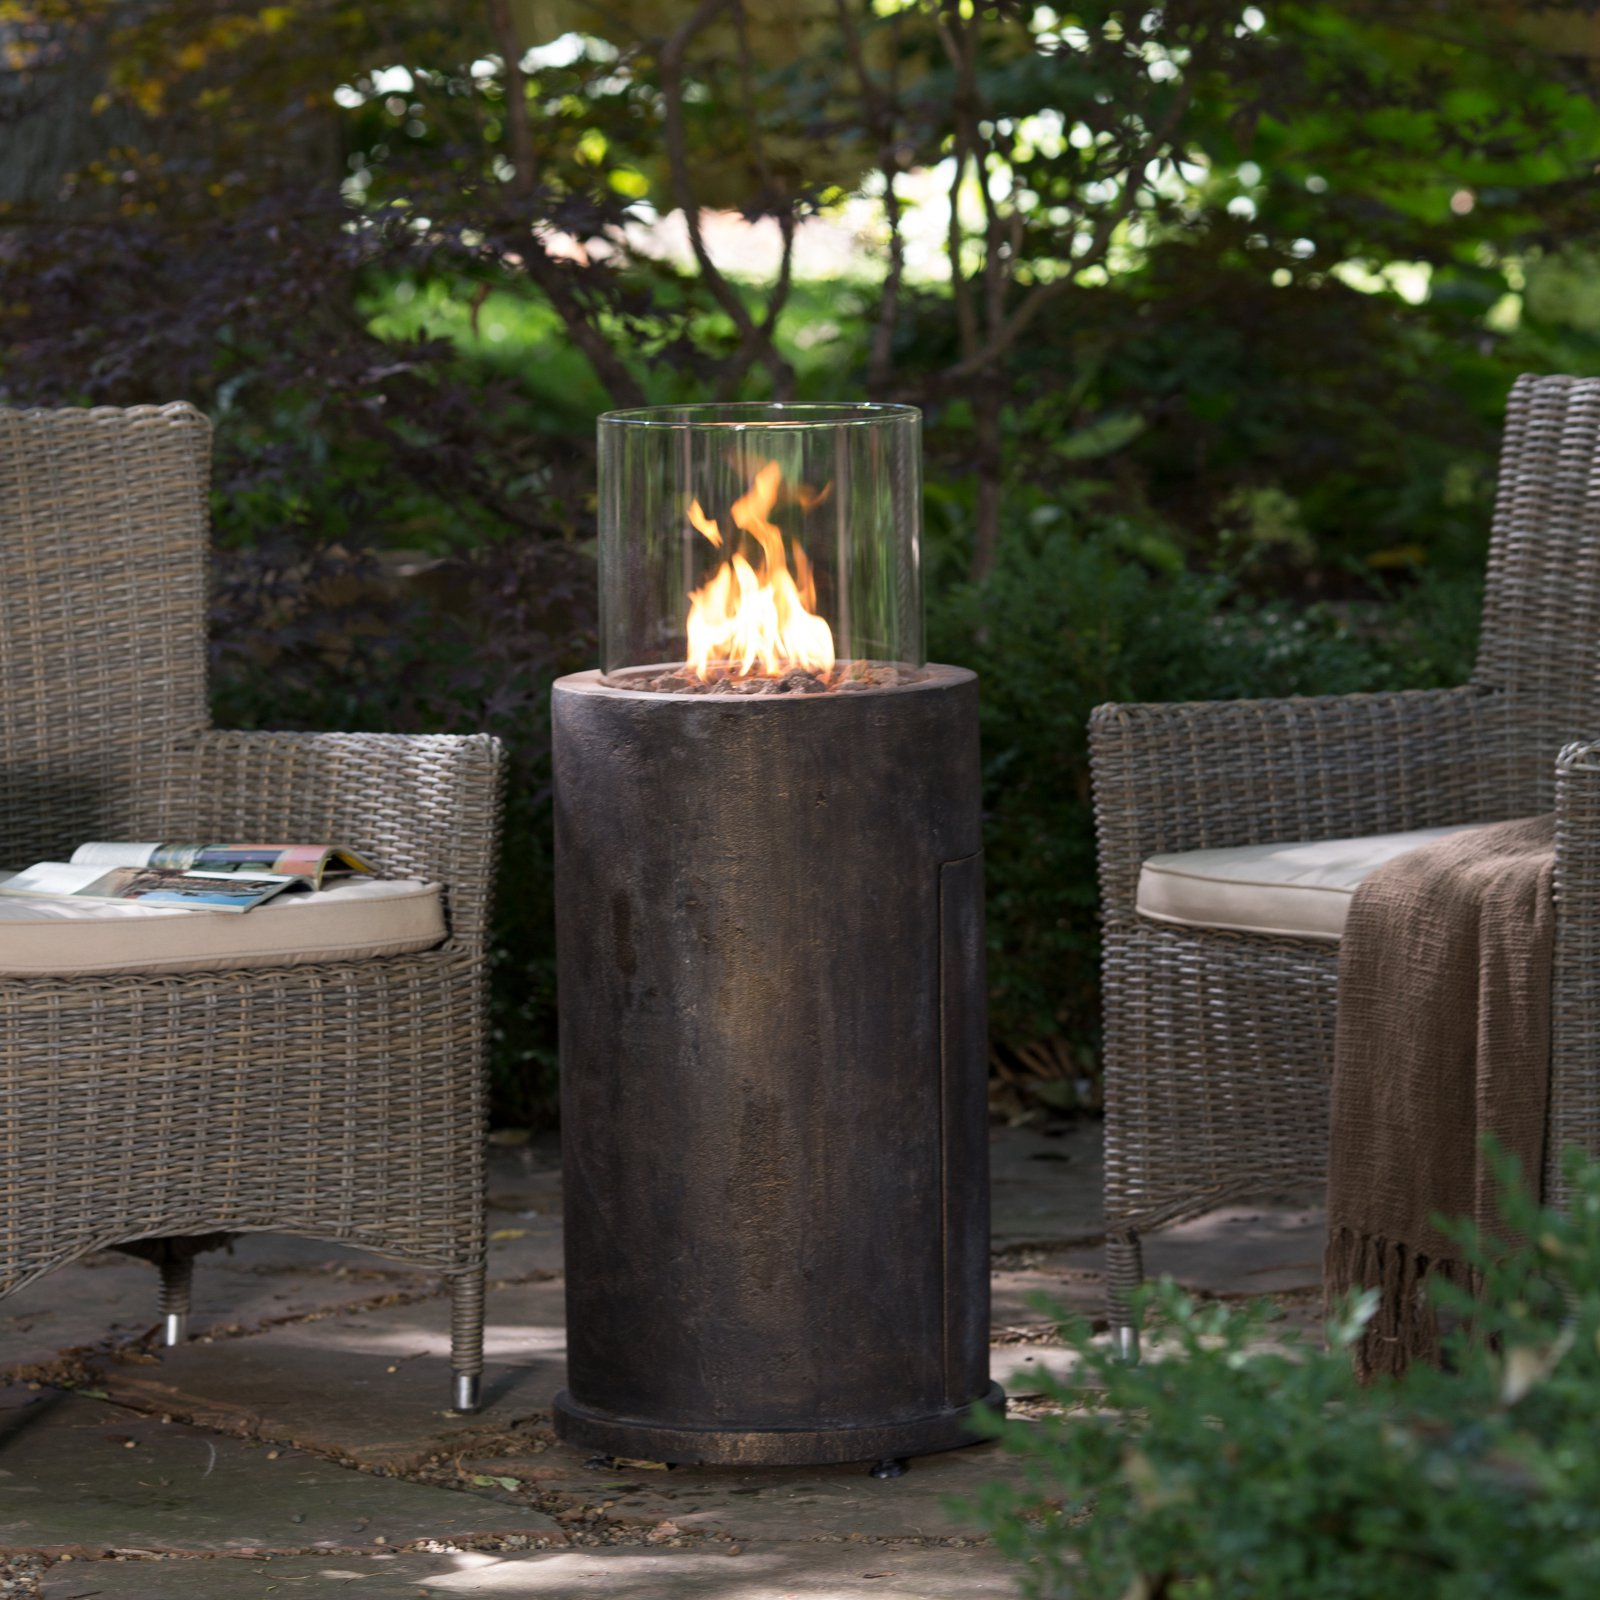 Red Ember Kona Gas Fire Column with FREE Cover